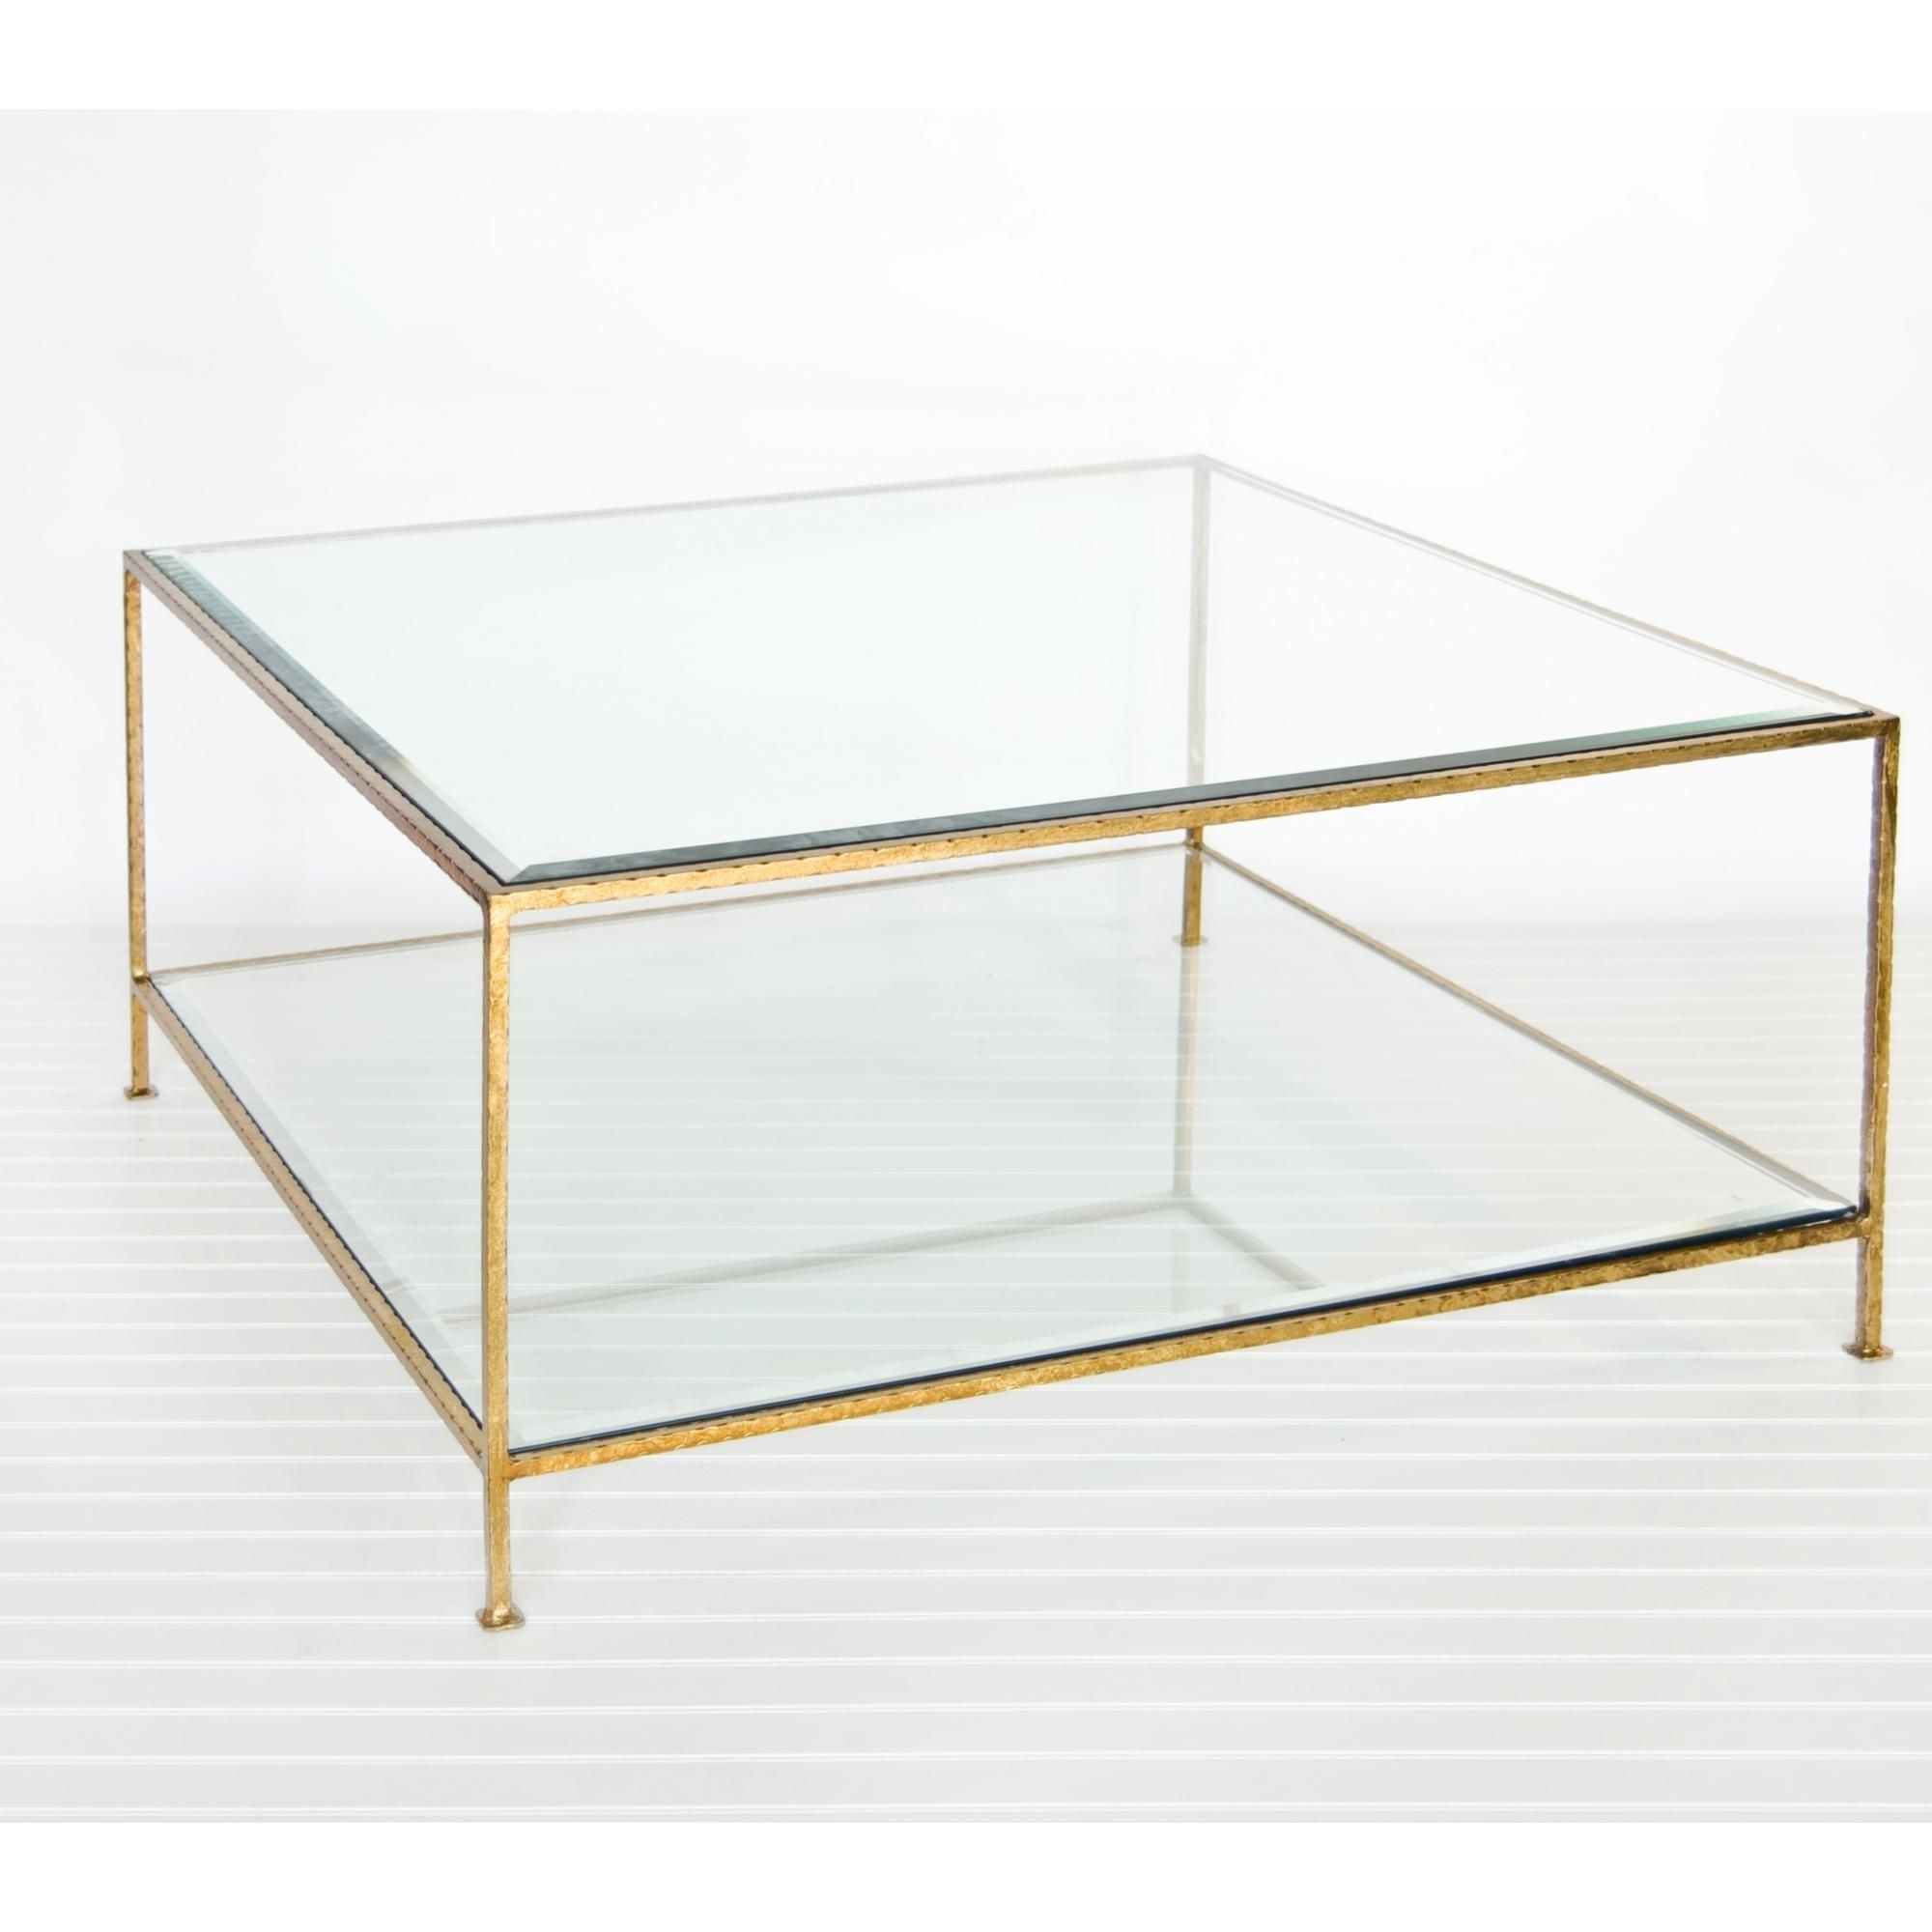 Worlds Away Quadro Coffee Table   Hammered Gold Leaf In 2018 | Nest Pertaining To Rectangular Brass Finish And Glass Coffee Tables (Photo 6 of 30)